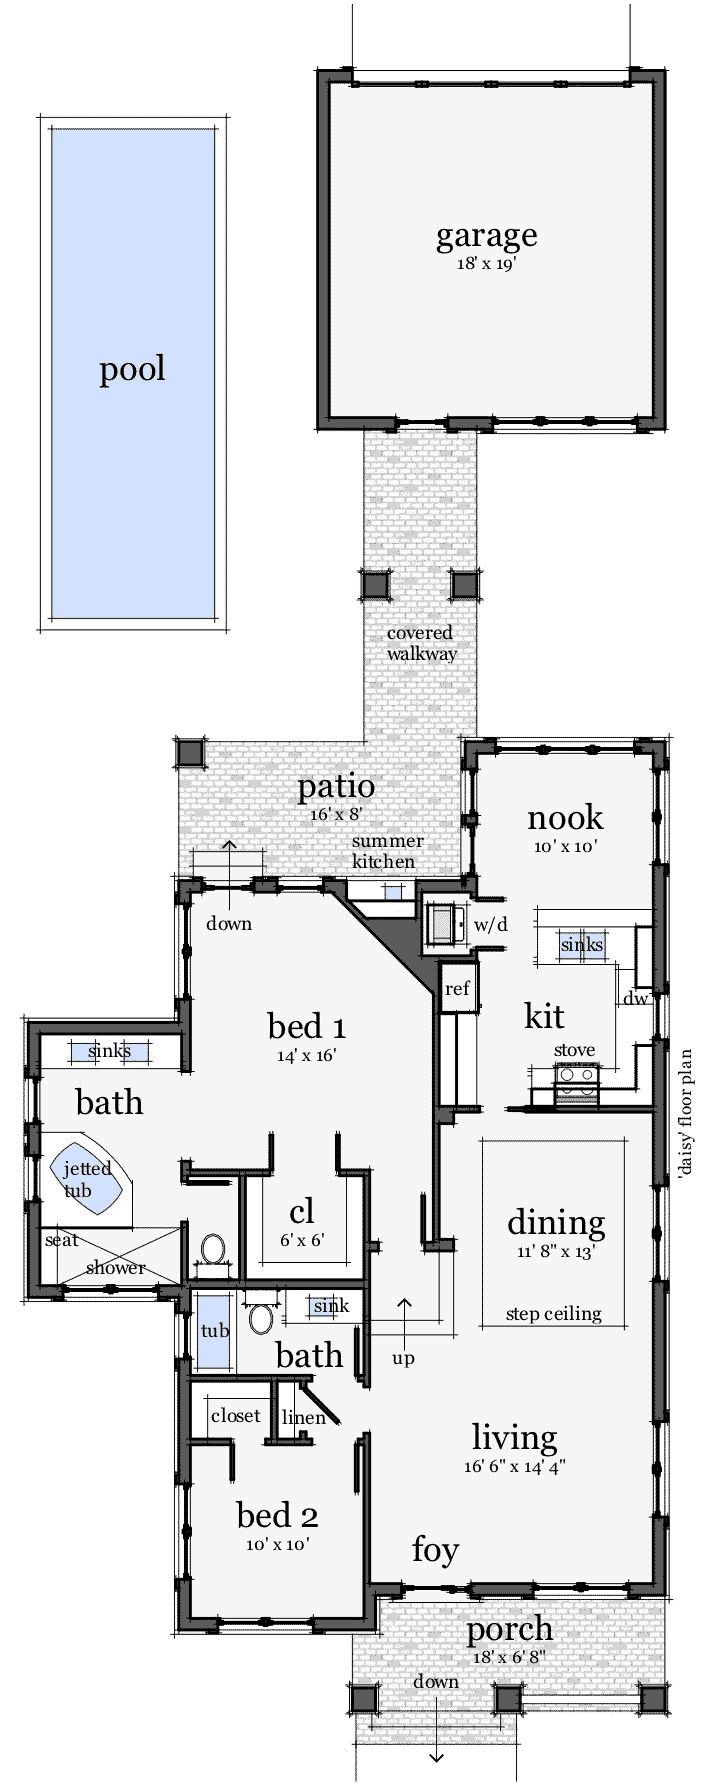 6358 best floor plans images on pinterest house floor plans cool house plans offers a unique variety of professionally designed home plans with floor plans by accredited home designers styles include country house